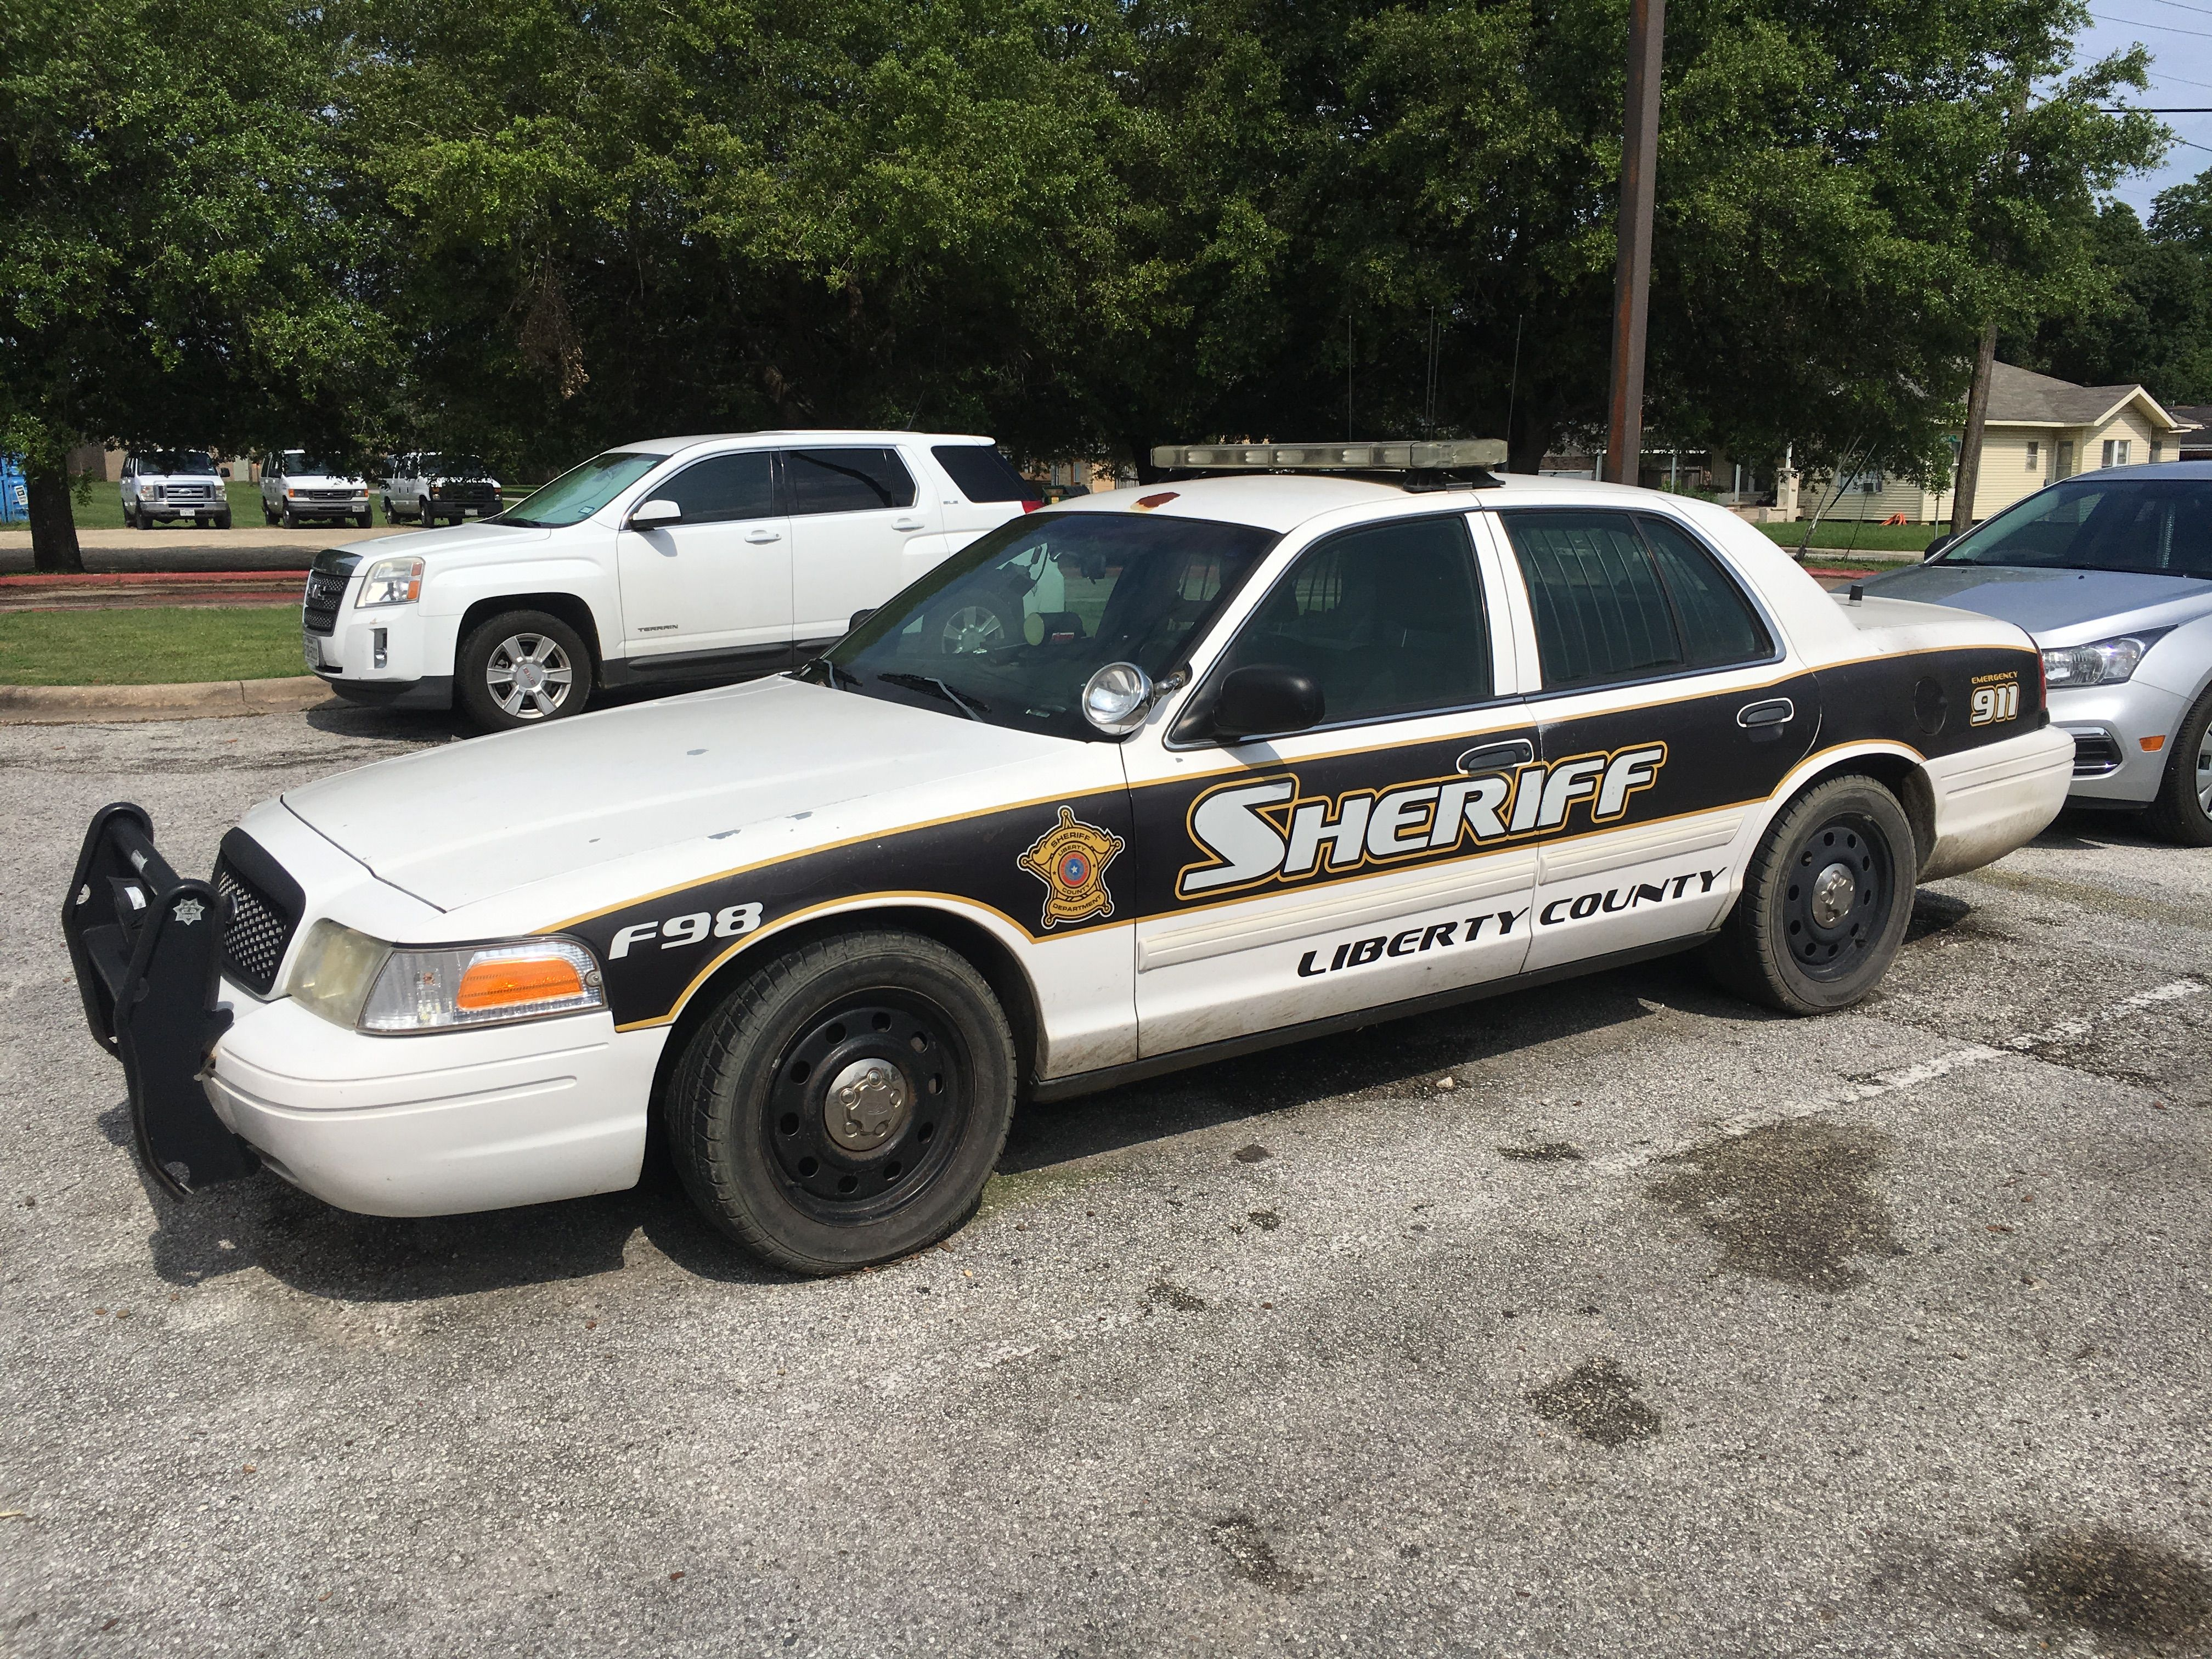 Liberty county sheriff s office ford crown victoria texas